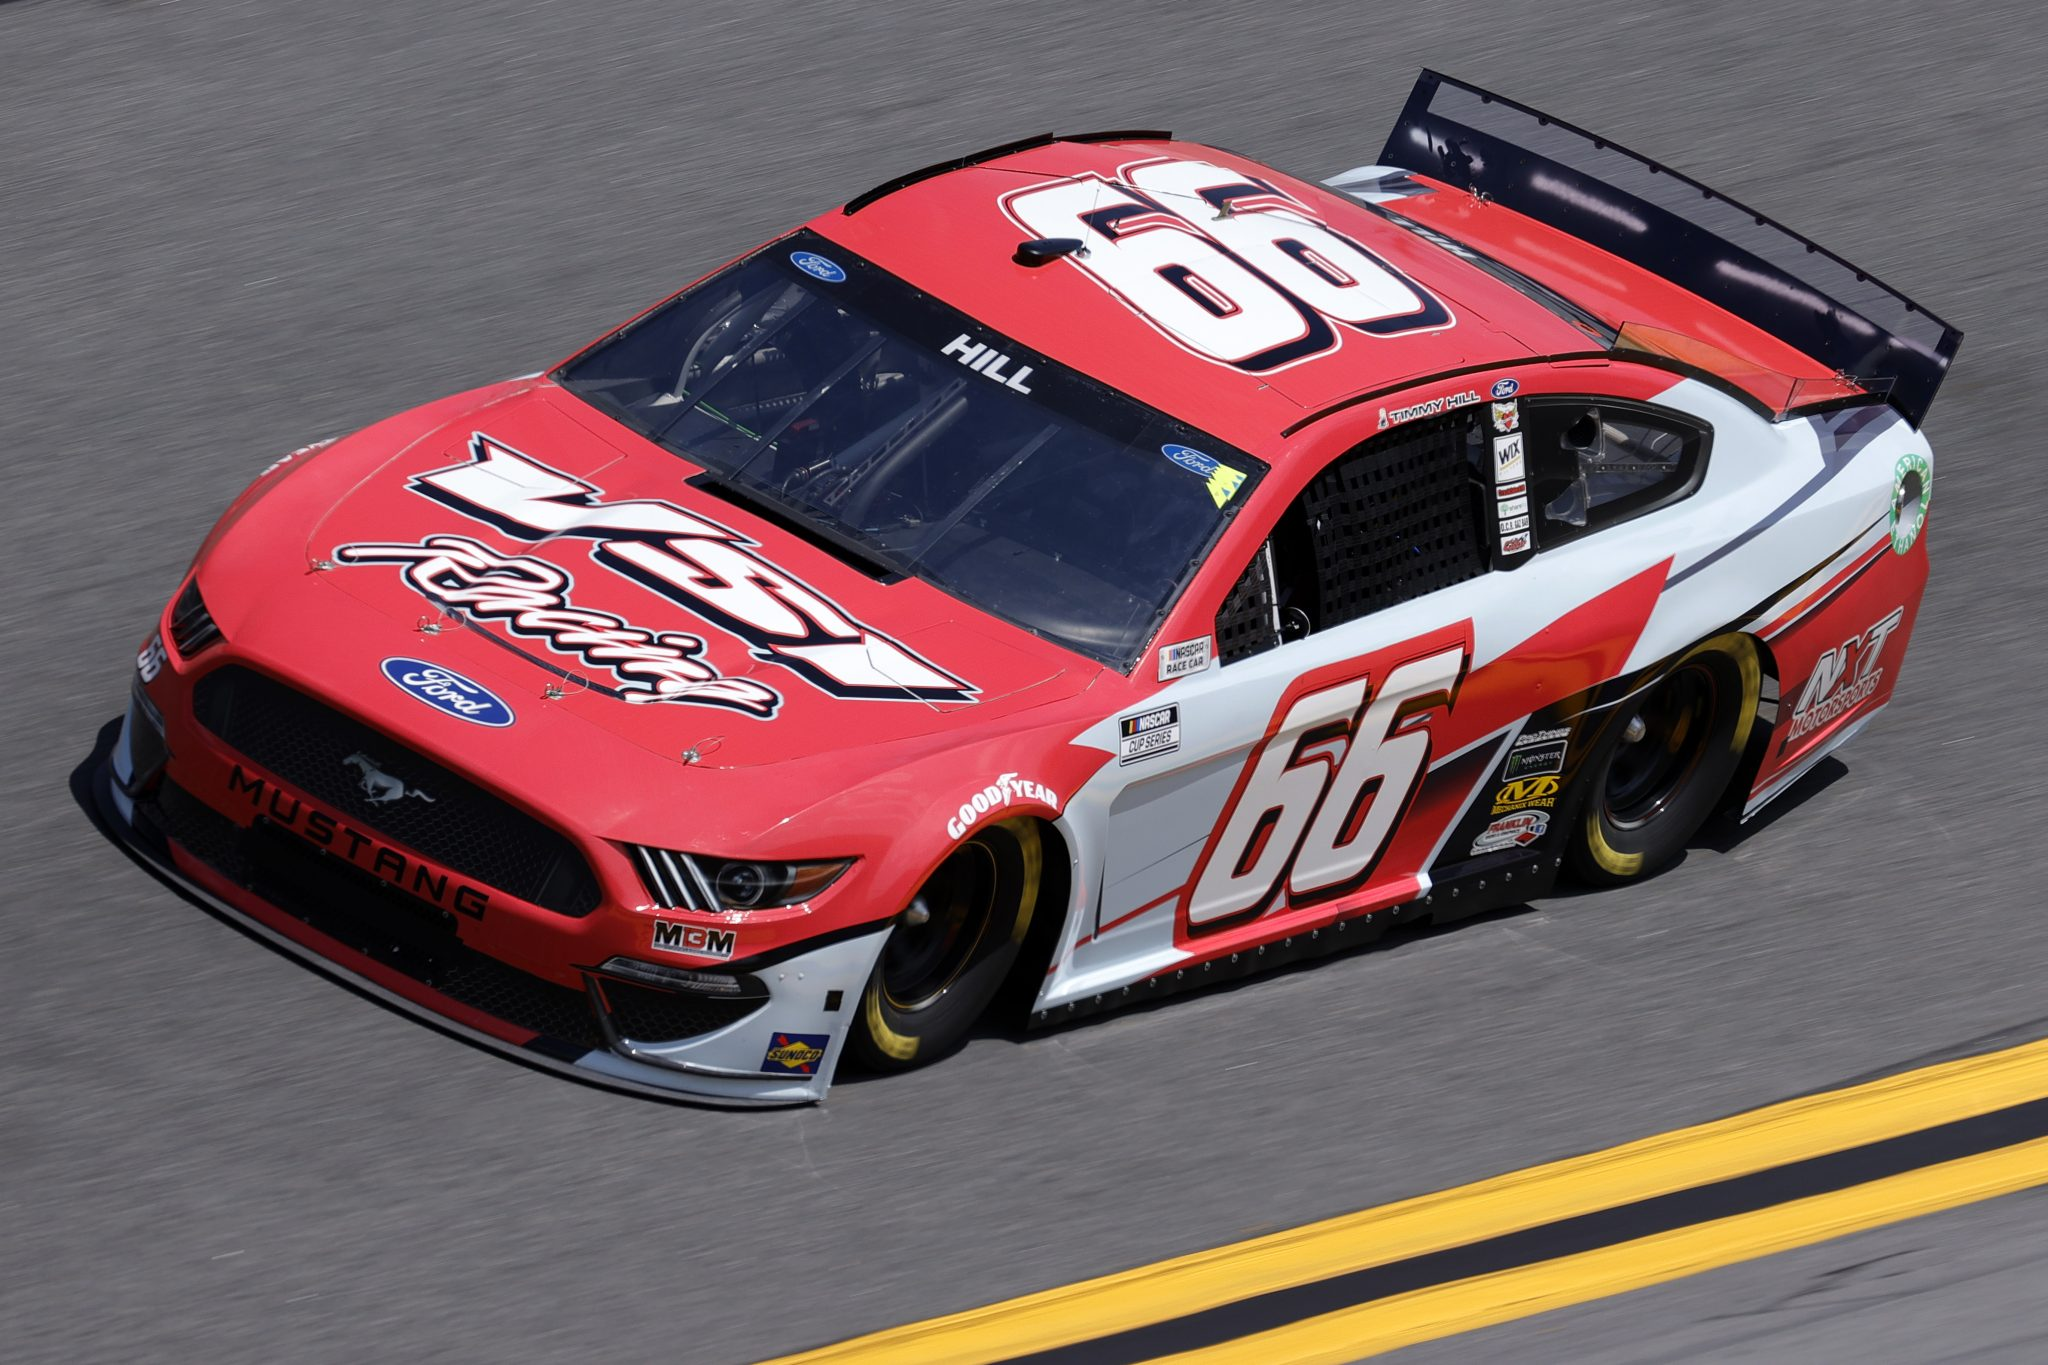 DAYTONA BEACH, FLORIDA - FEBRUARY 10: Timmy Hill, driver of the #66 VSI Racing Ford, drives during practice for the NASCAR Cup Series 63rd Annual Daytona 500 at Daytona International Speedway on February 10, 2021 in Daytona Beach, Florida. (Photo by Jared C. Tilton/Getty Images) | Getty Images